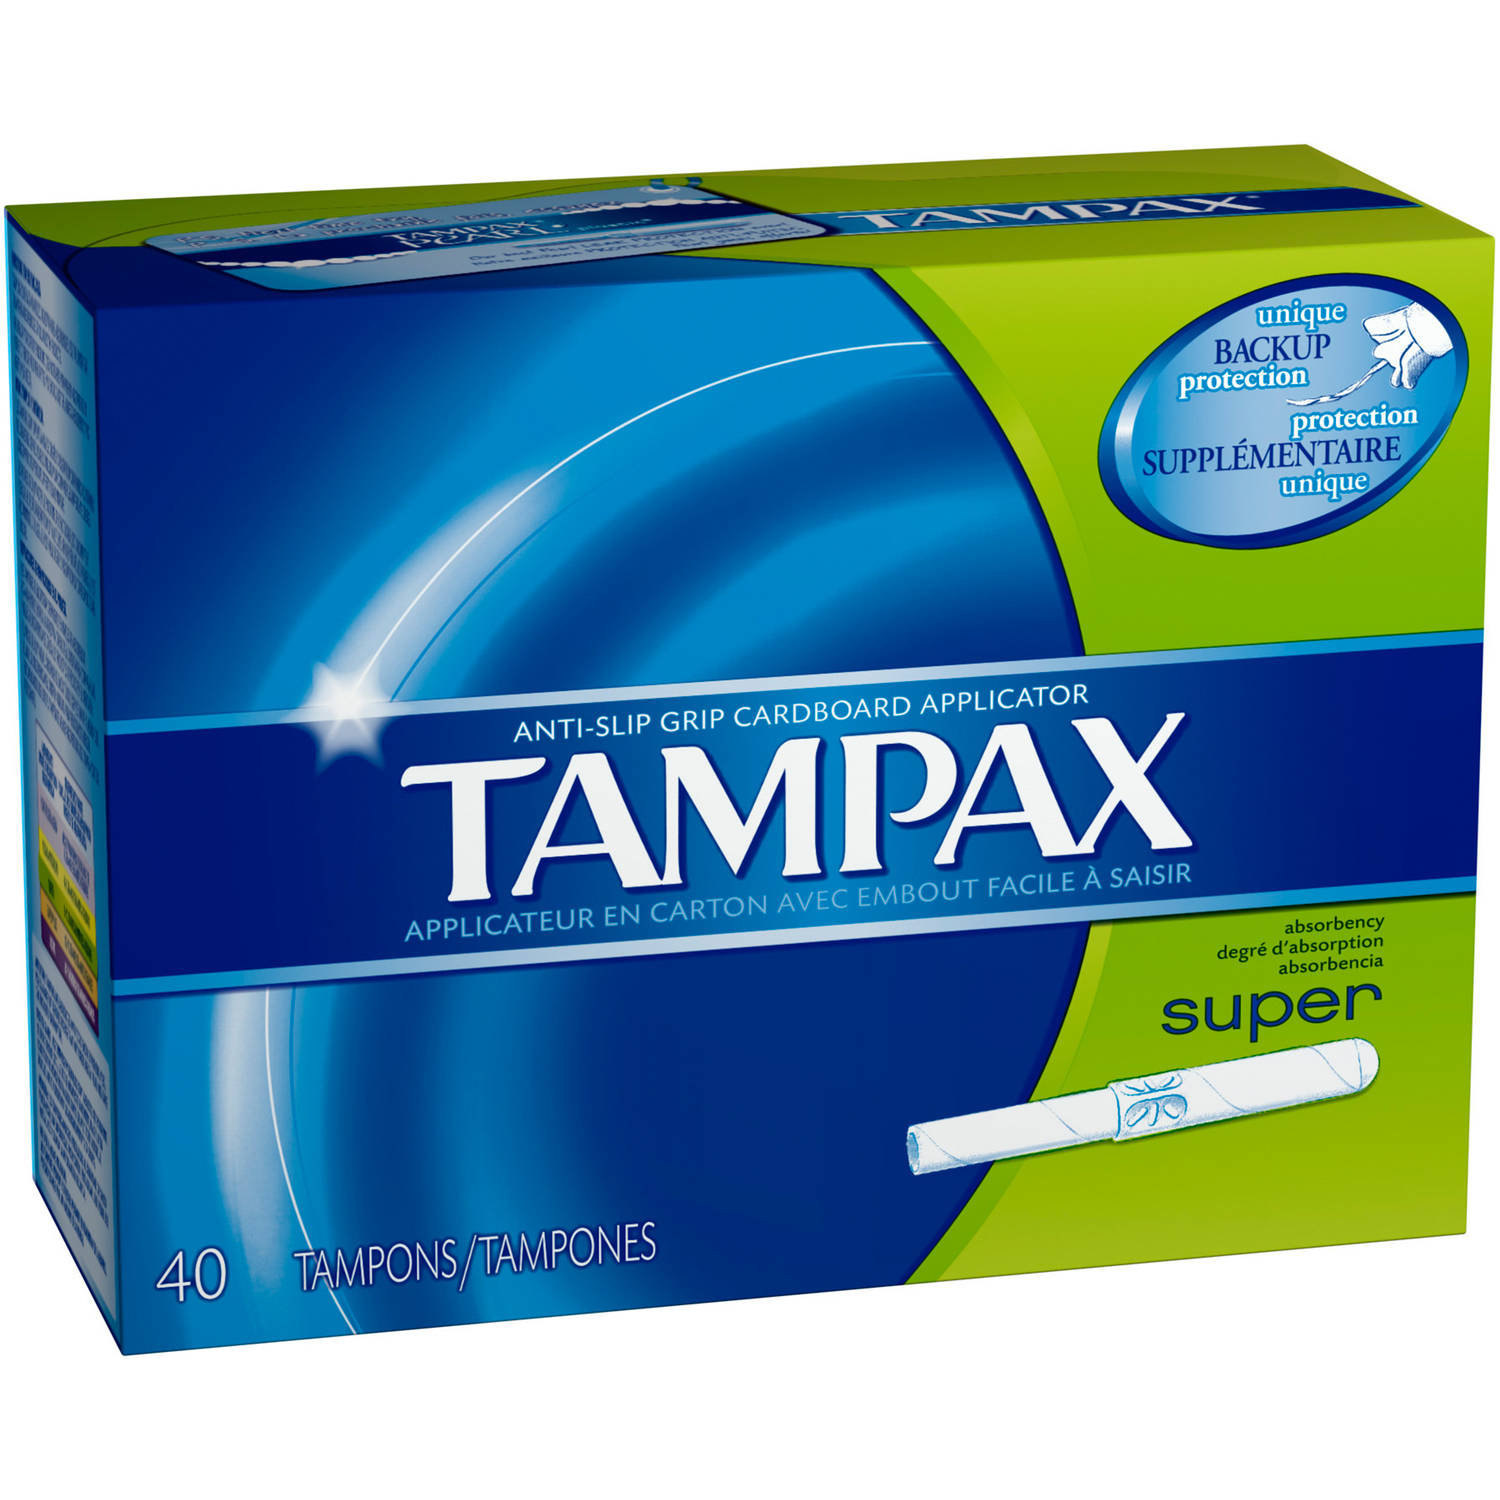 Tampax Anti-Slip Grip Cardboard Applicator Super Absorbency Tampons, (Choose your Count)